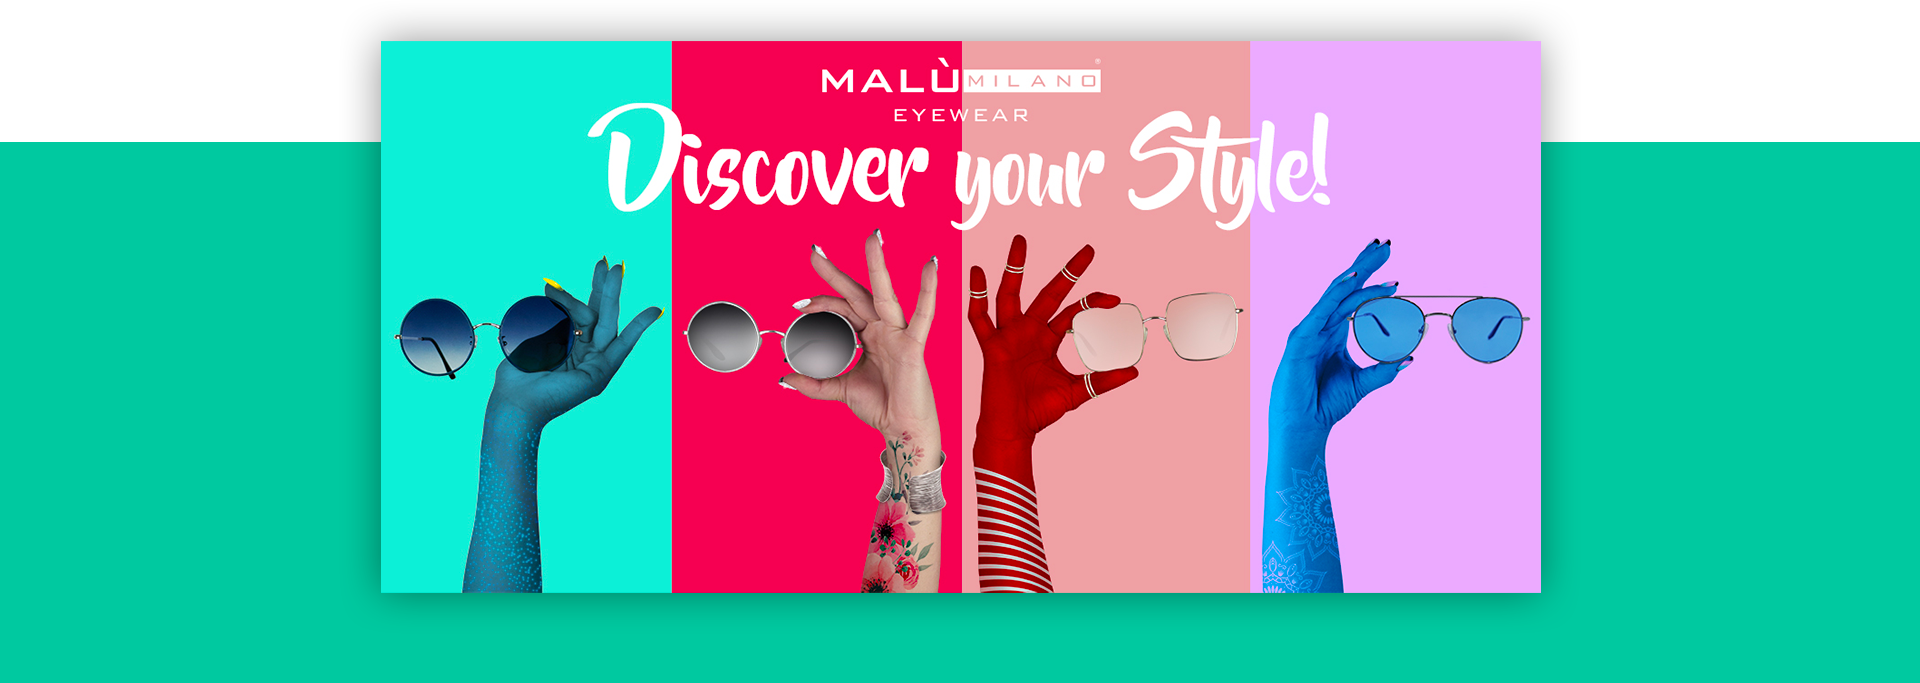 Malù Milano Discover your Style